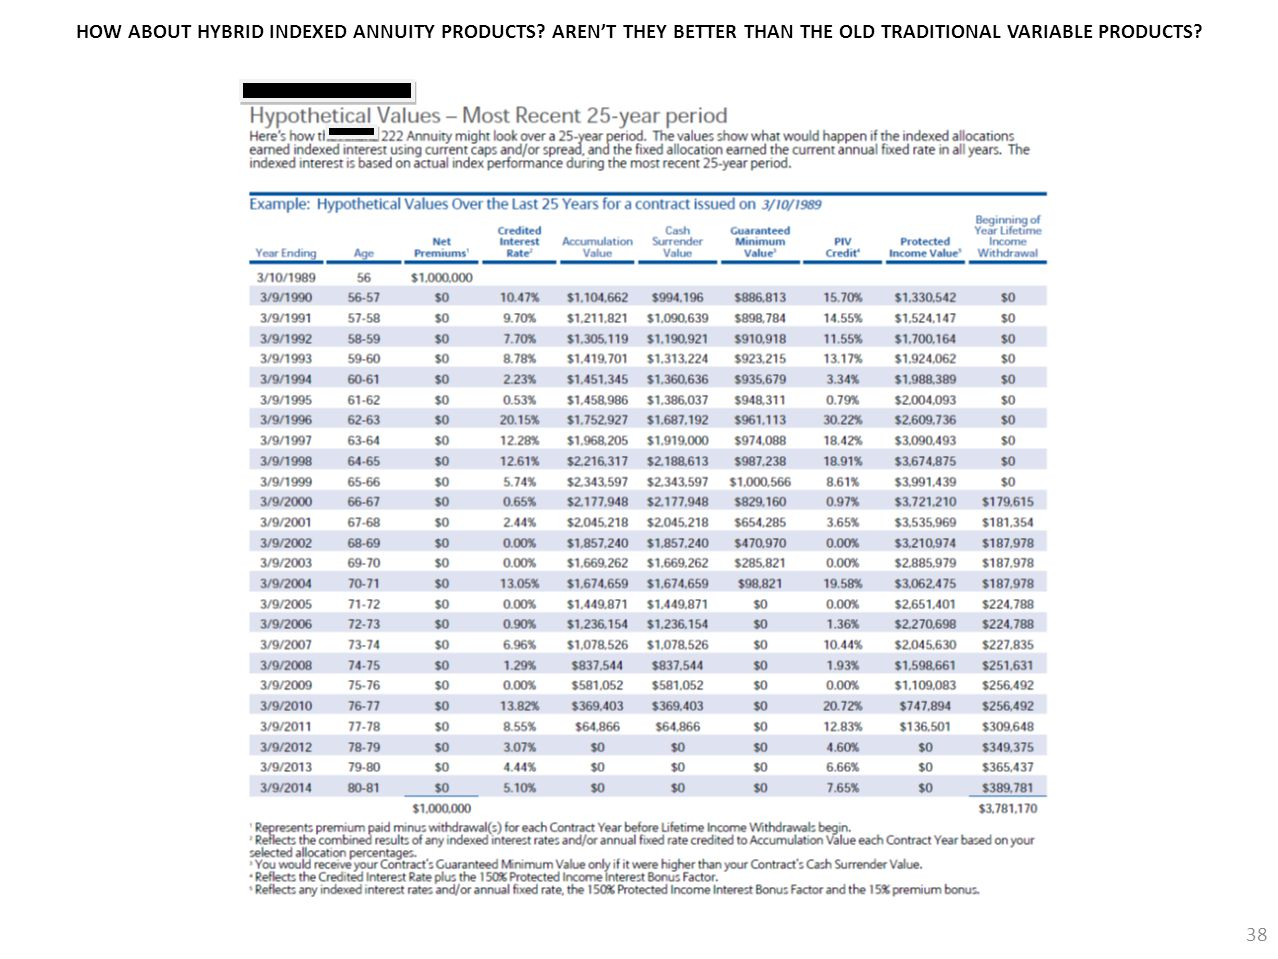 38 HOW ABOUT HYBRID INDEXED ANNUITY PRODUCTS? AREN'T THEY BETTER THAN THE OLD TRADITIONAL VARIABLE PRODUCTS?